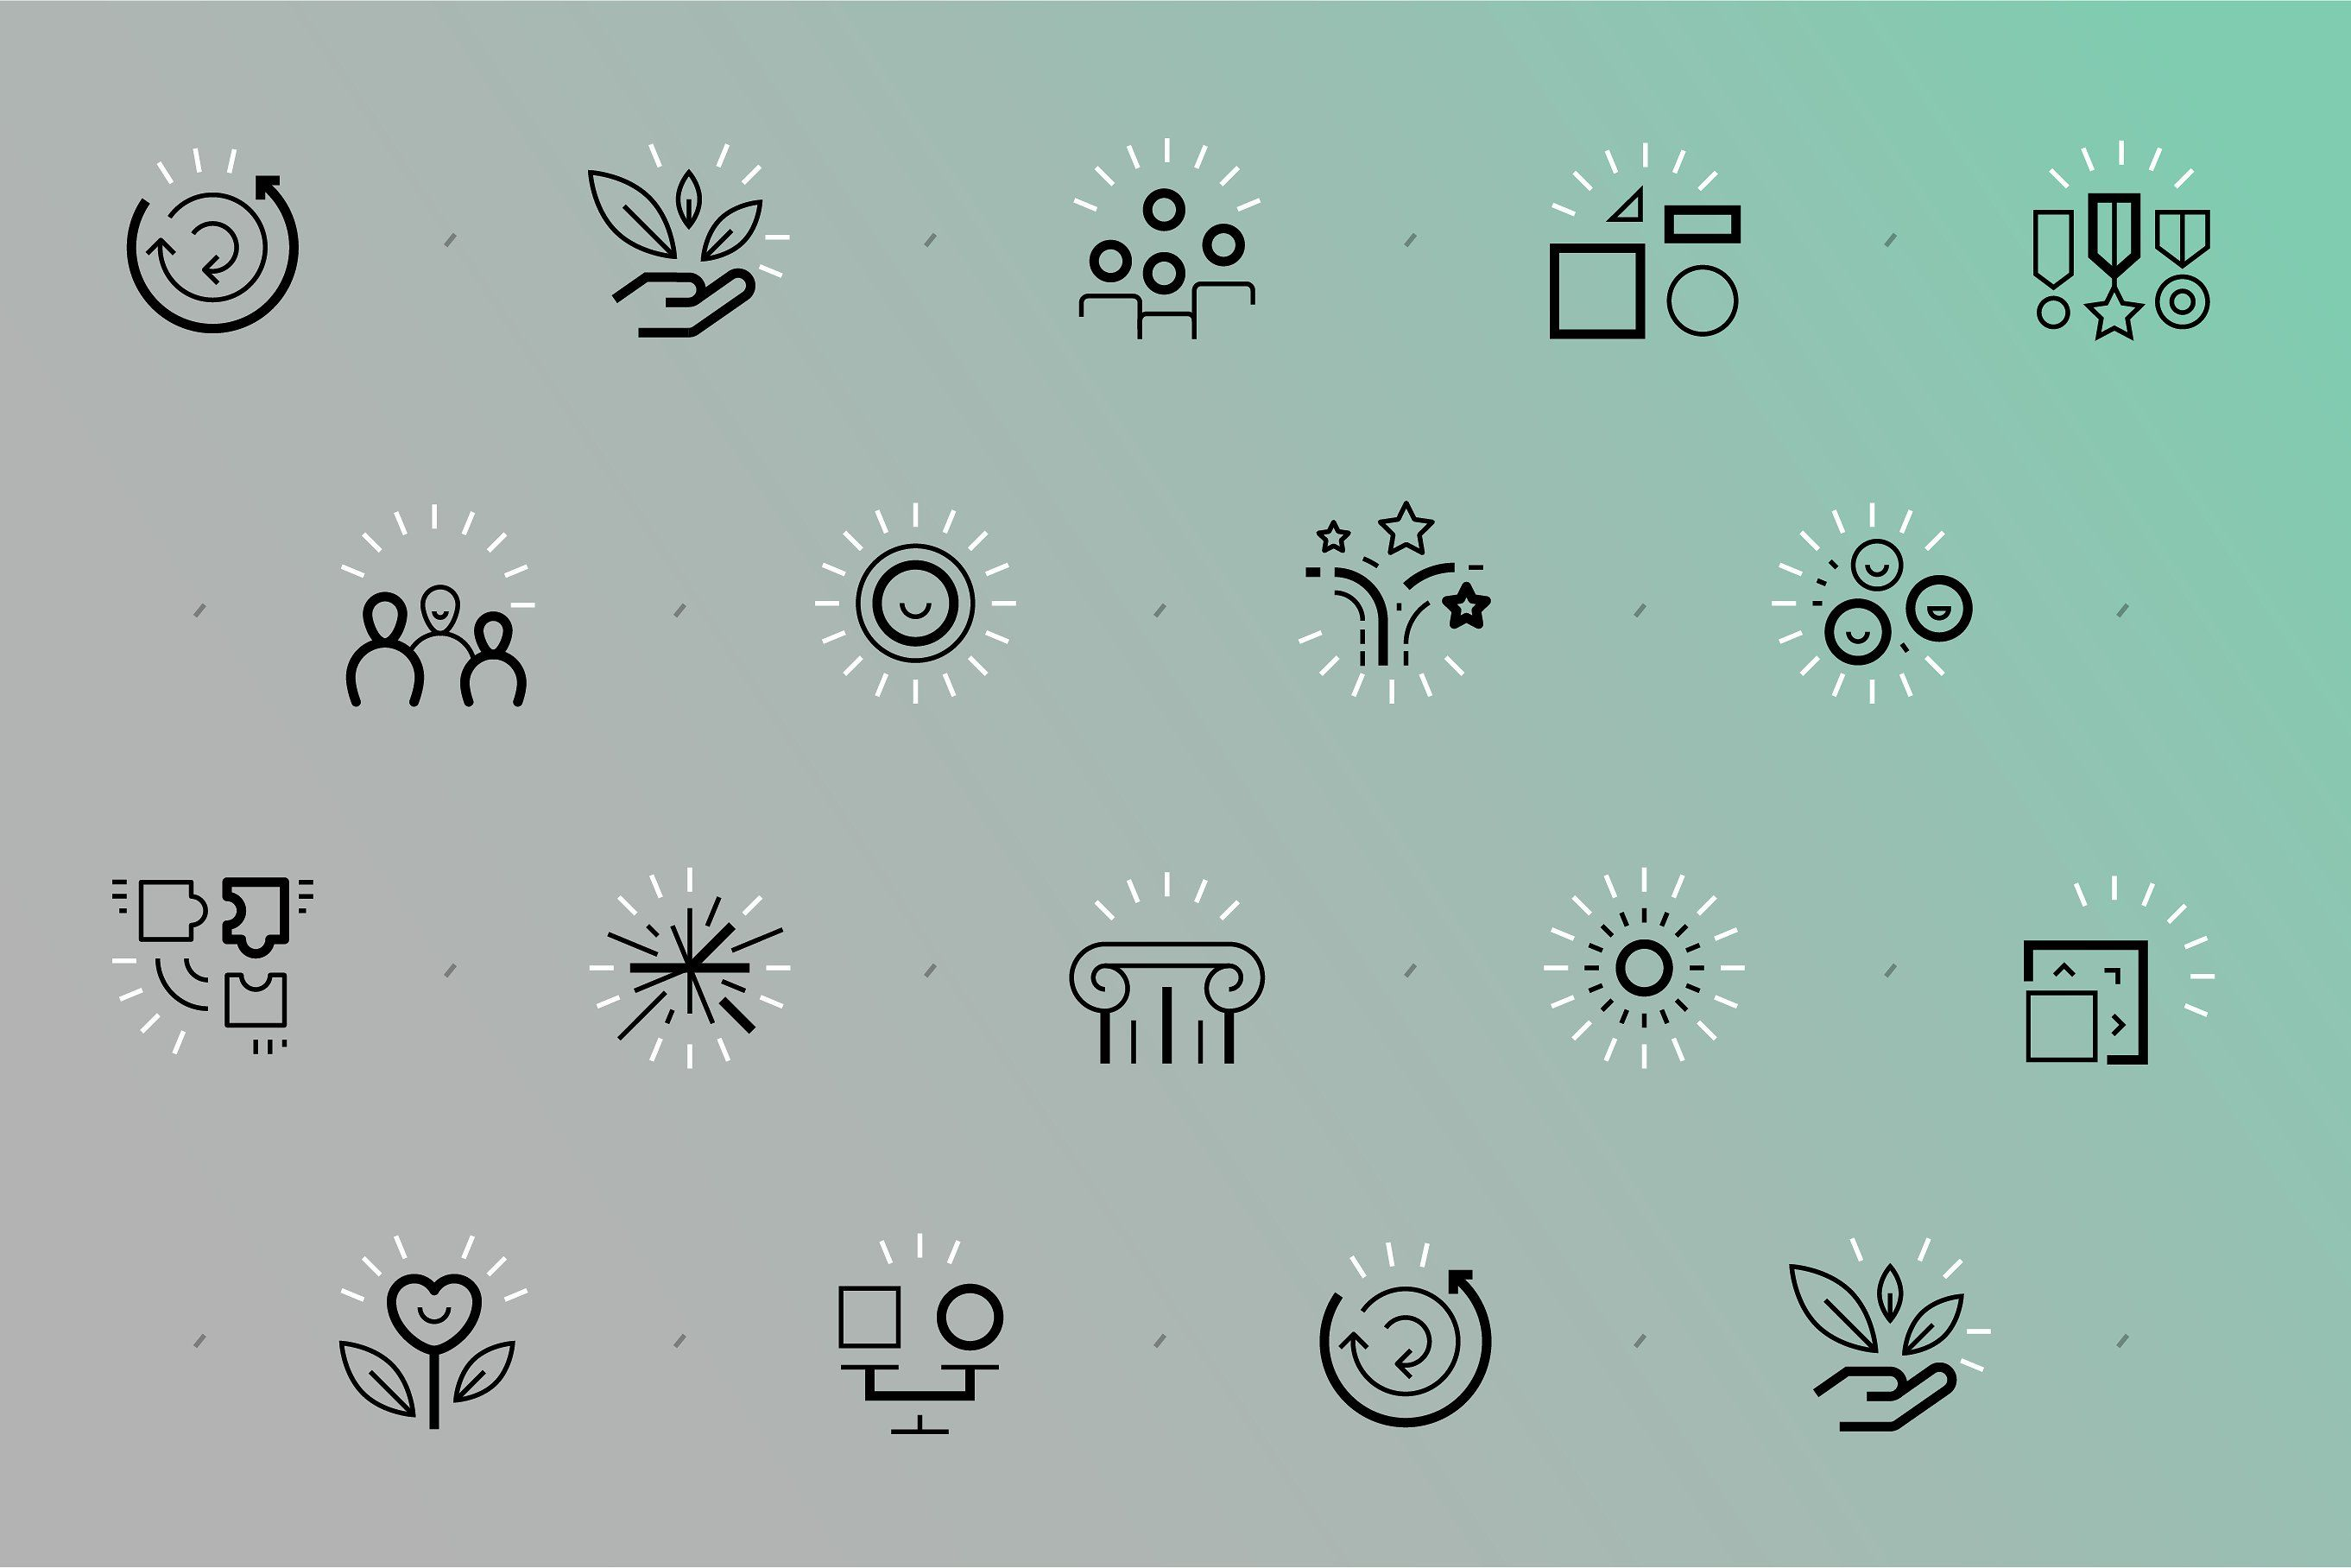 Business Value Icons Business Icon Business Card Design Inspiration Human Logo Inspiration